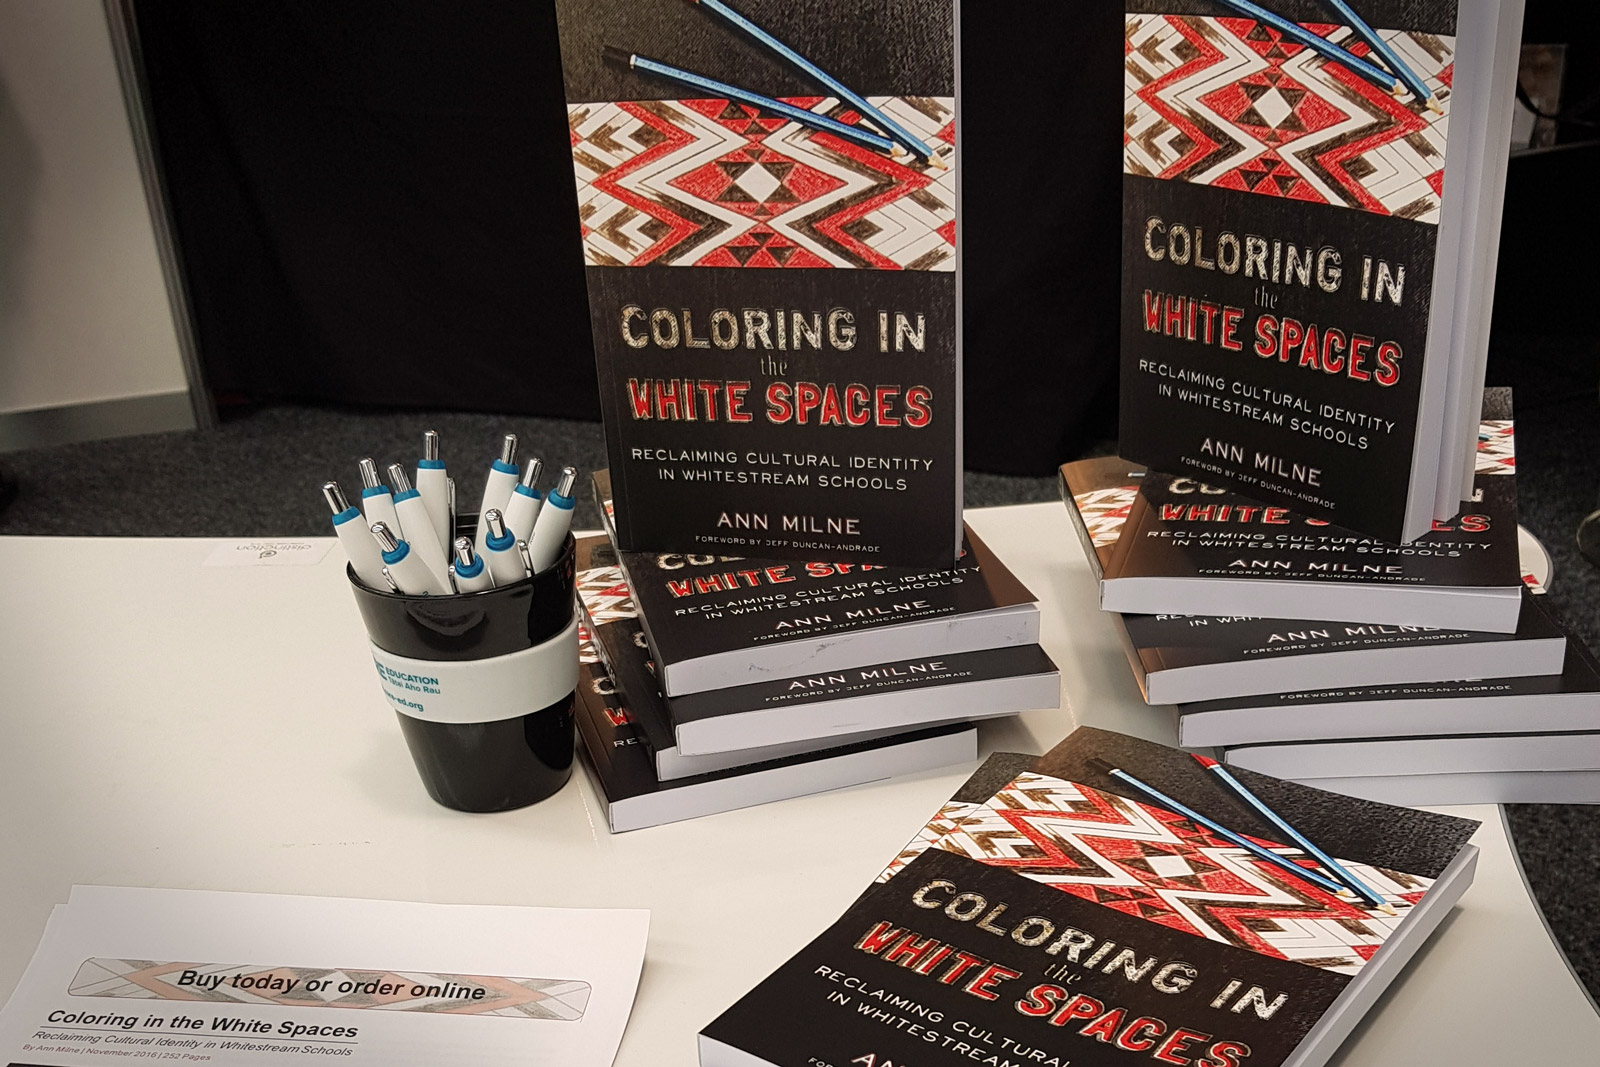 Colouring-the-White-Spaces-book-display.jpg